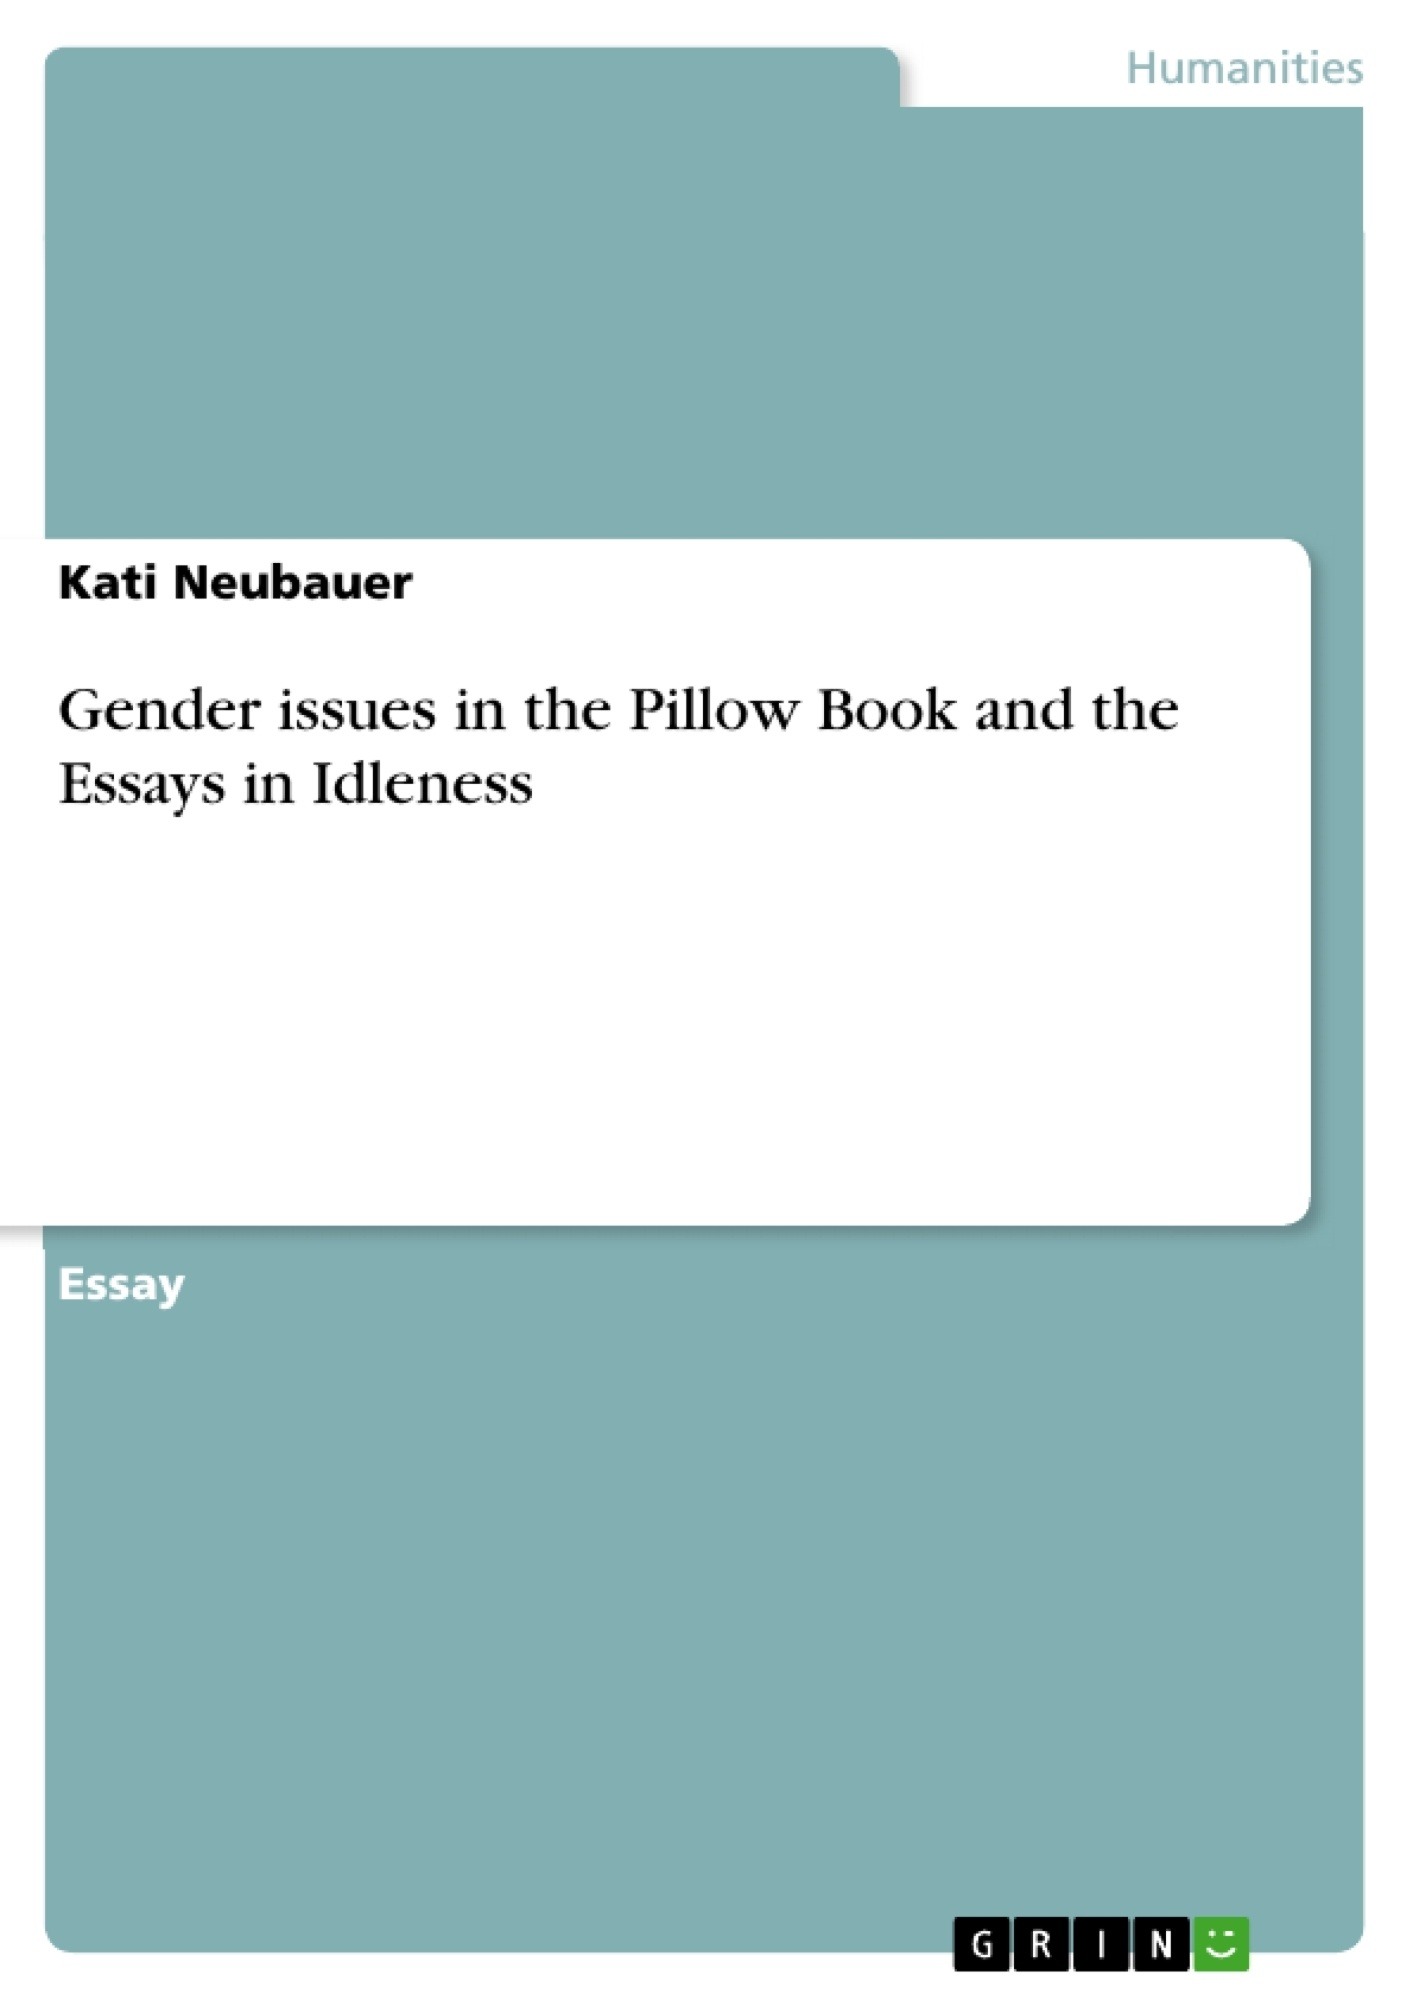 essay in idleness fantasia essay essays in idleness essays  gender issues in the pillow book and the essays in idleness gender issues in the pillow